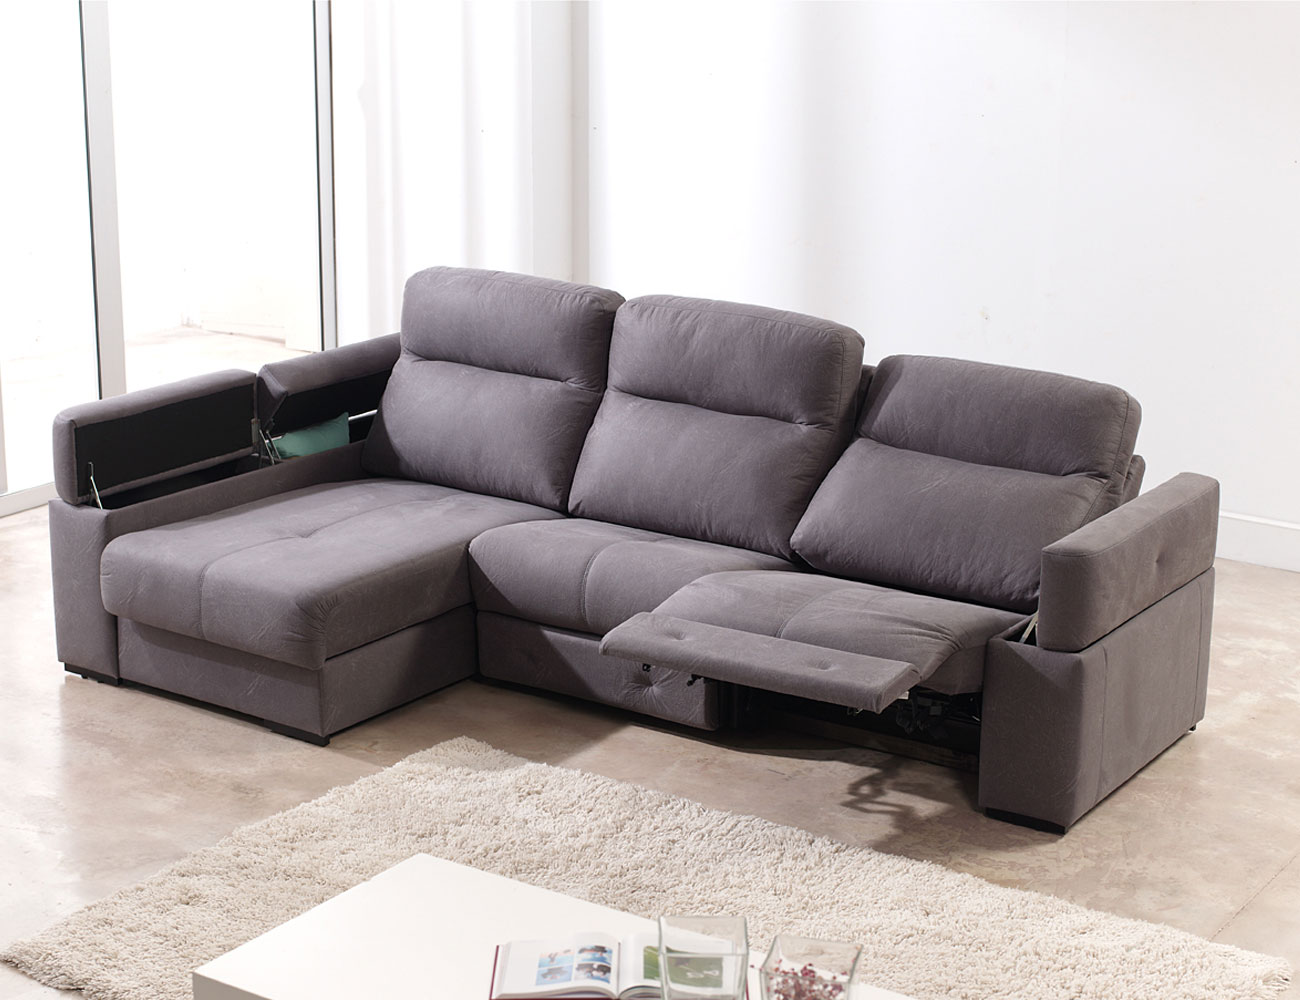 Sofa chaiselongue relax motor electrico 3 arcon 18